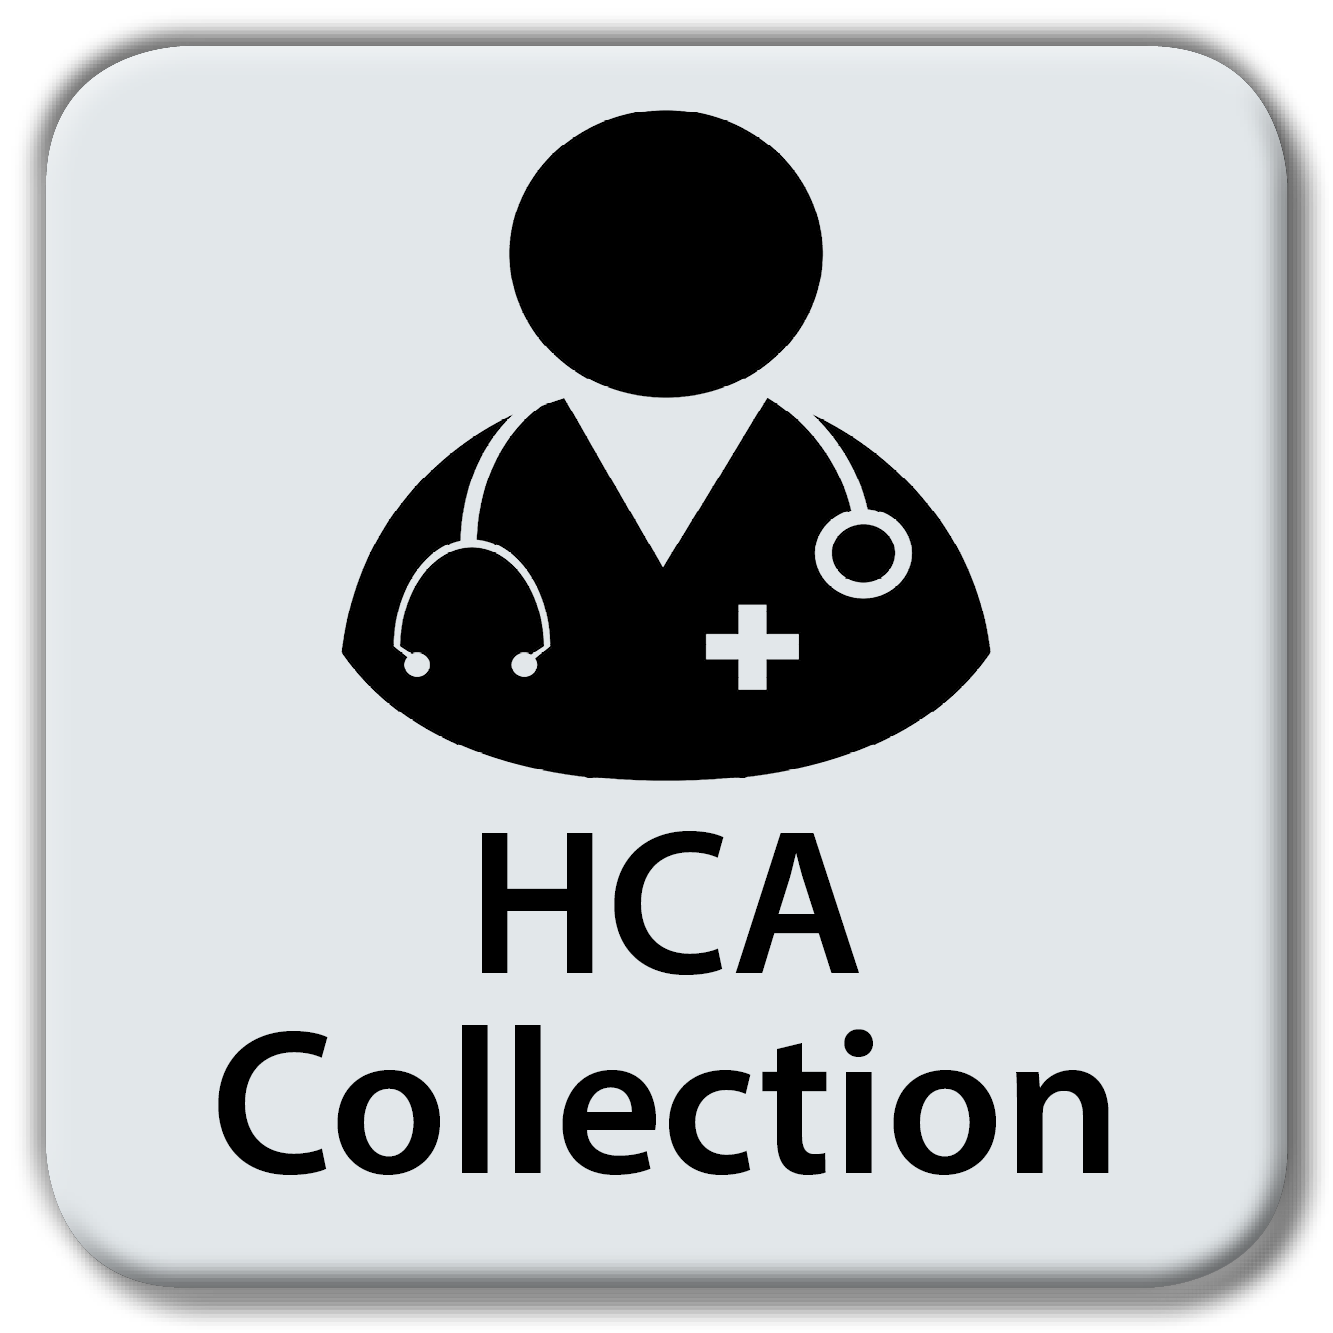 HCA Collection